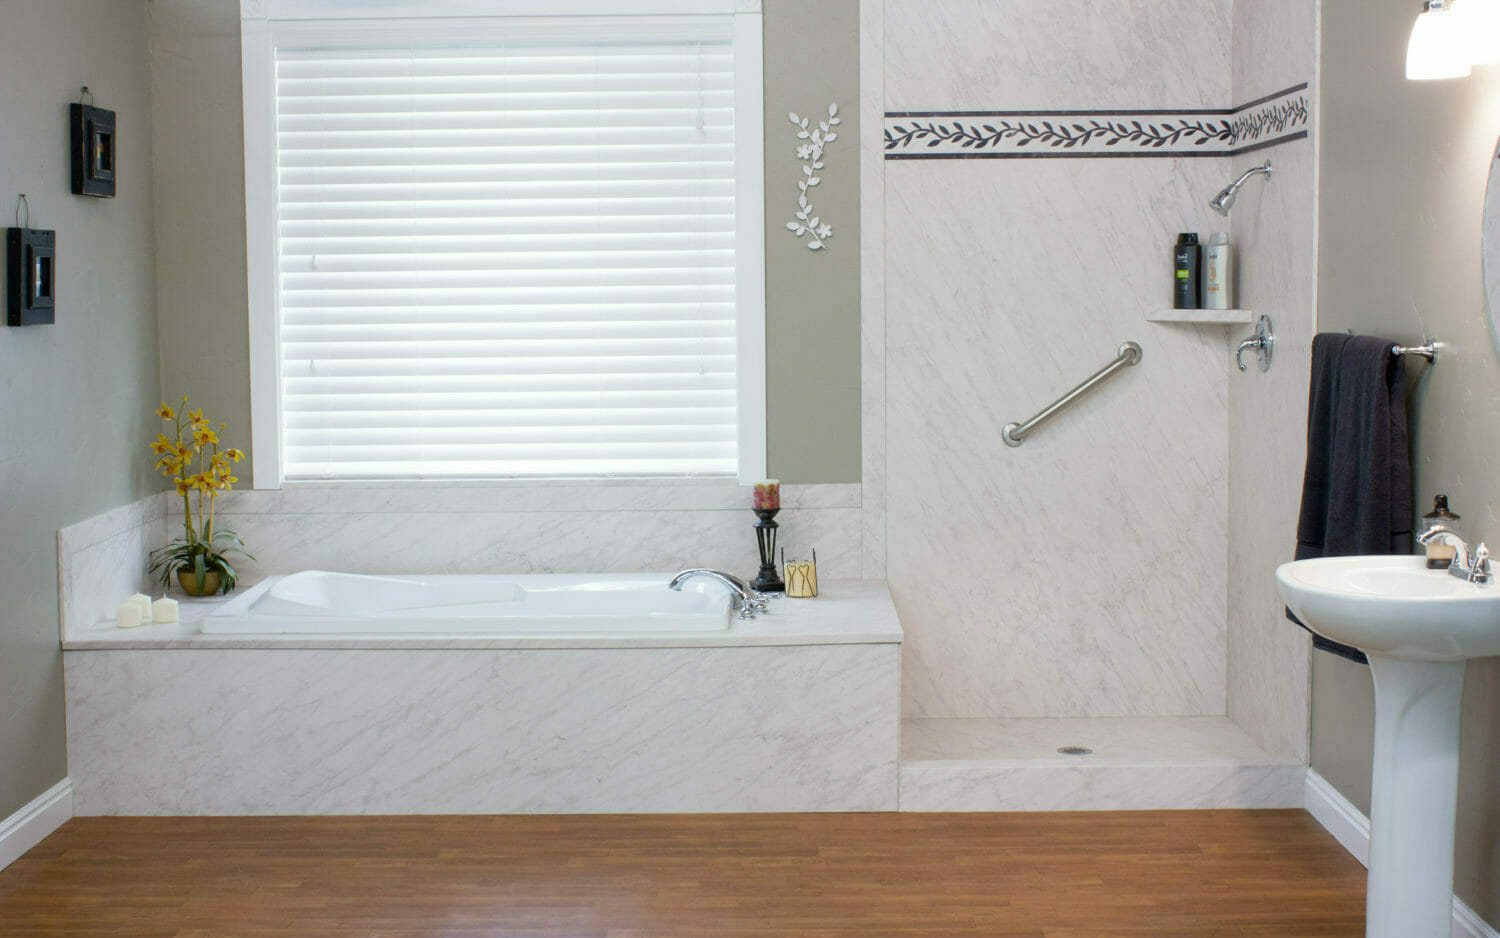 Pros And Cons Of Converting Your Claw Foot Tub Into A Shower